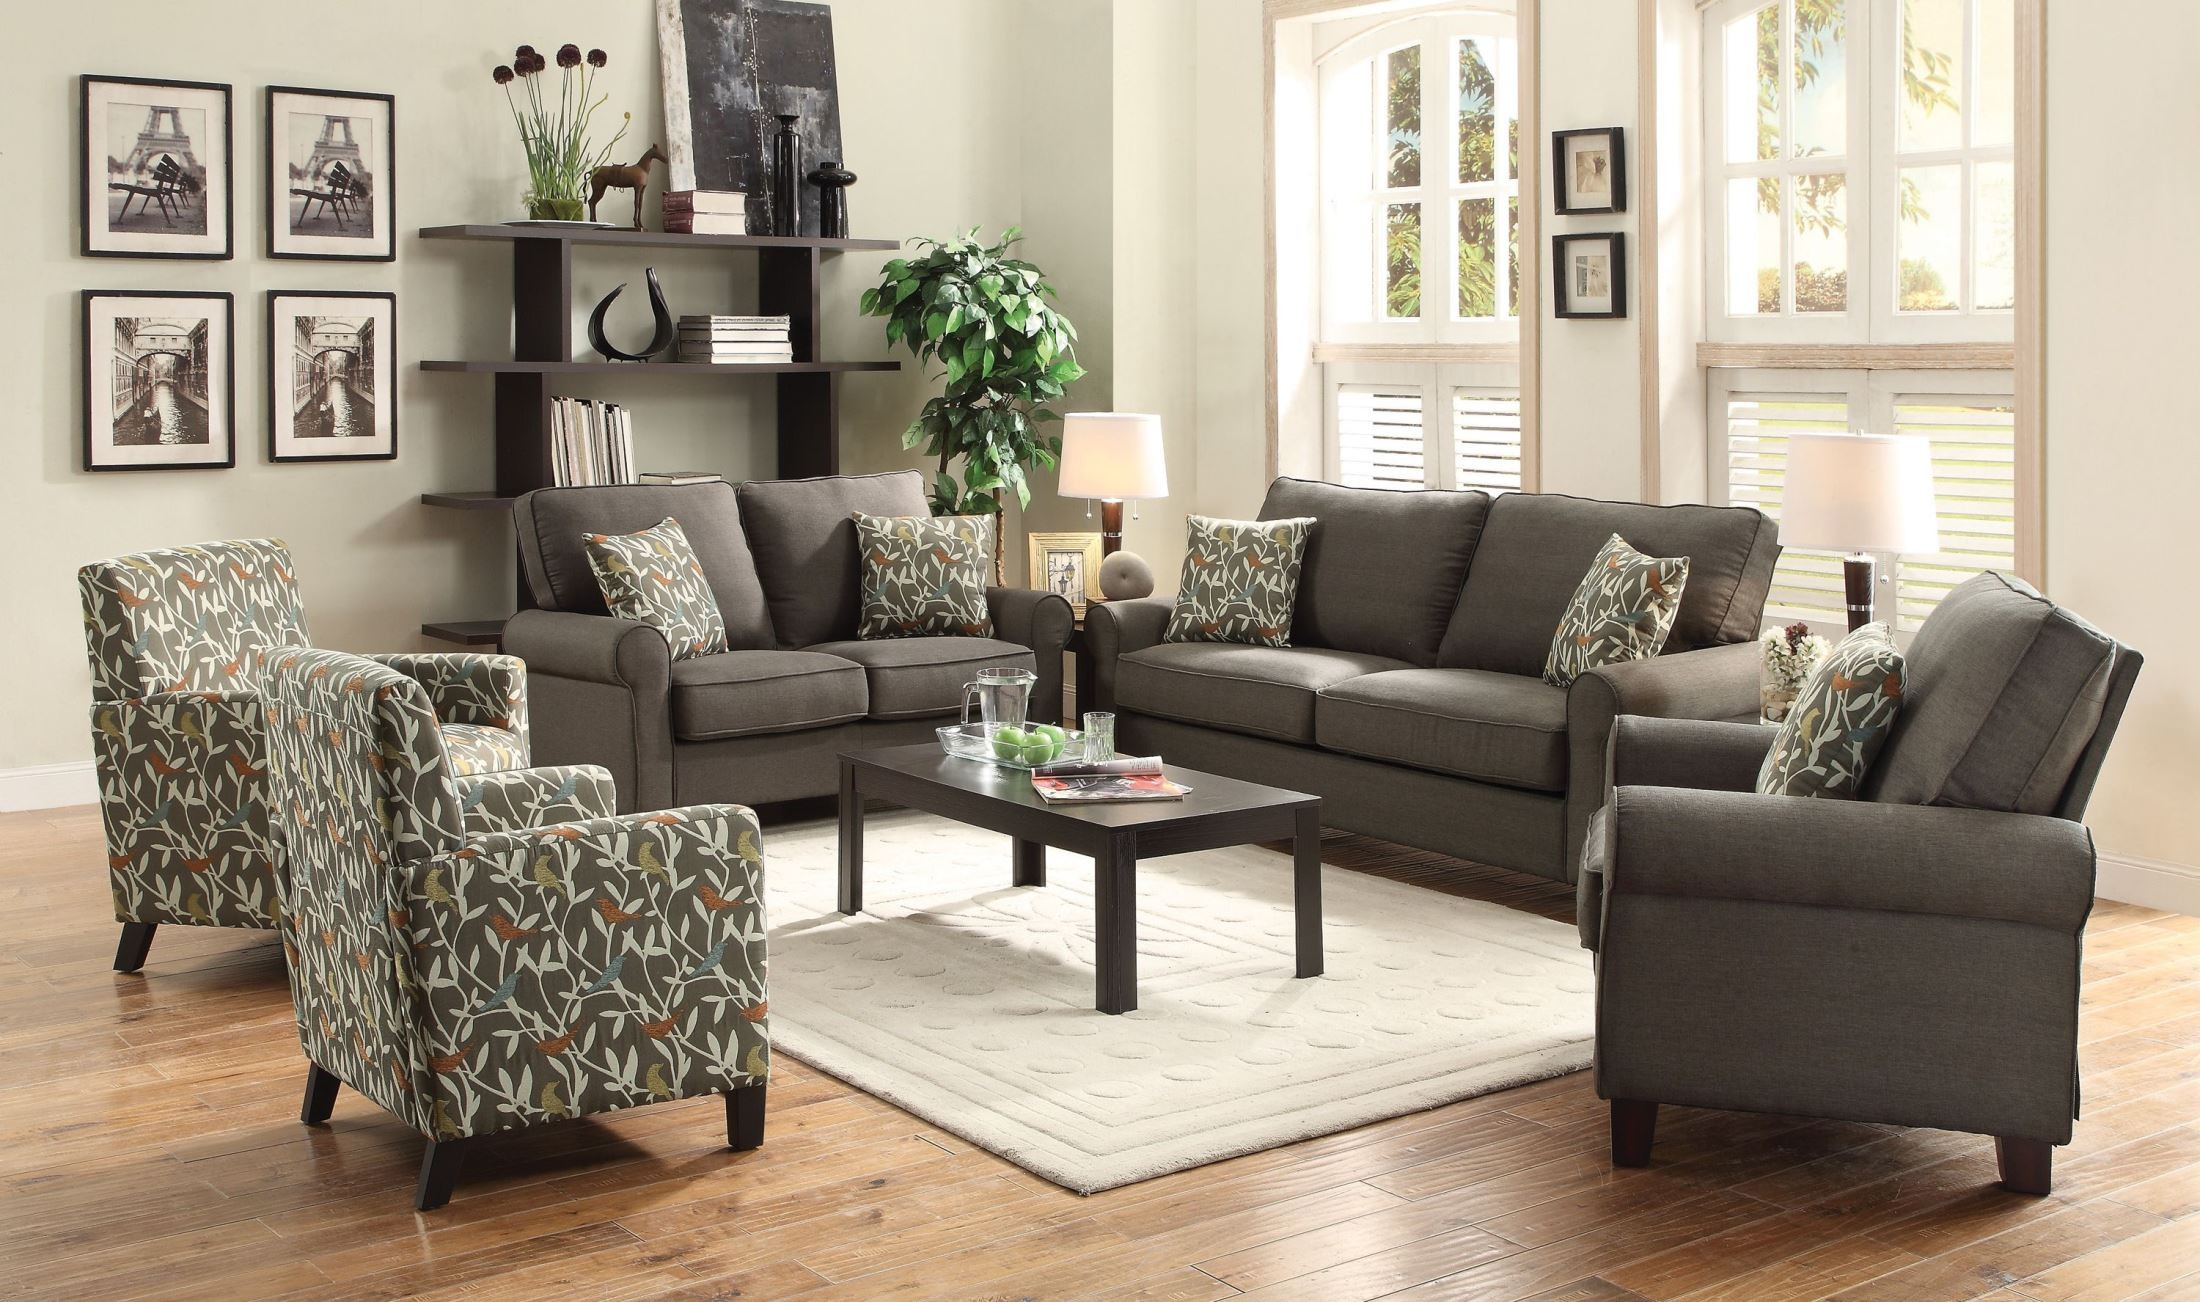 living room collection furniture noella grey living room set from coaster 504781 16376